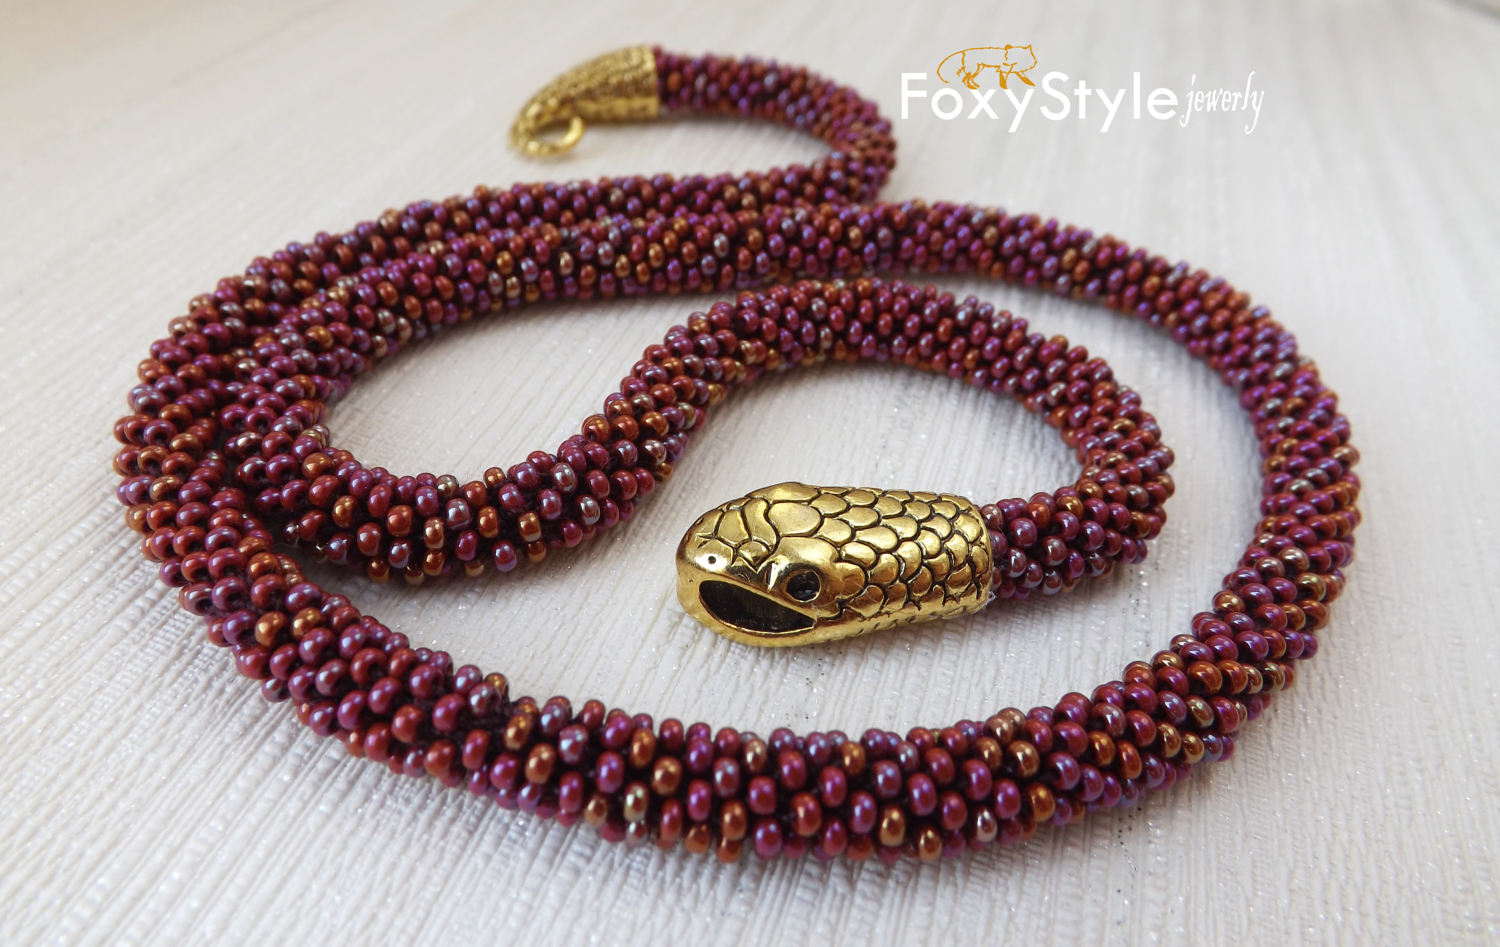 foxy style jewelry snake necklace